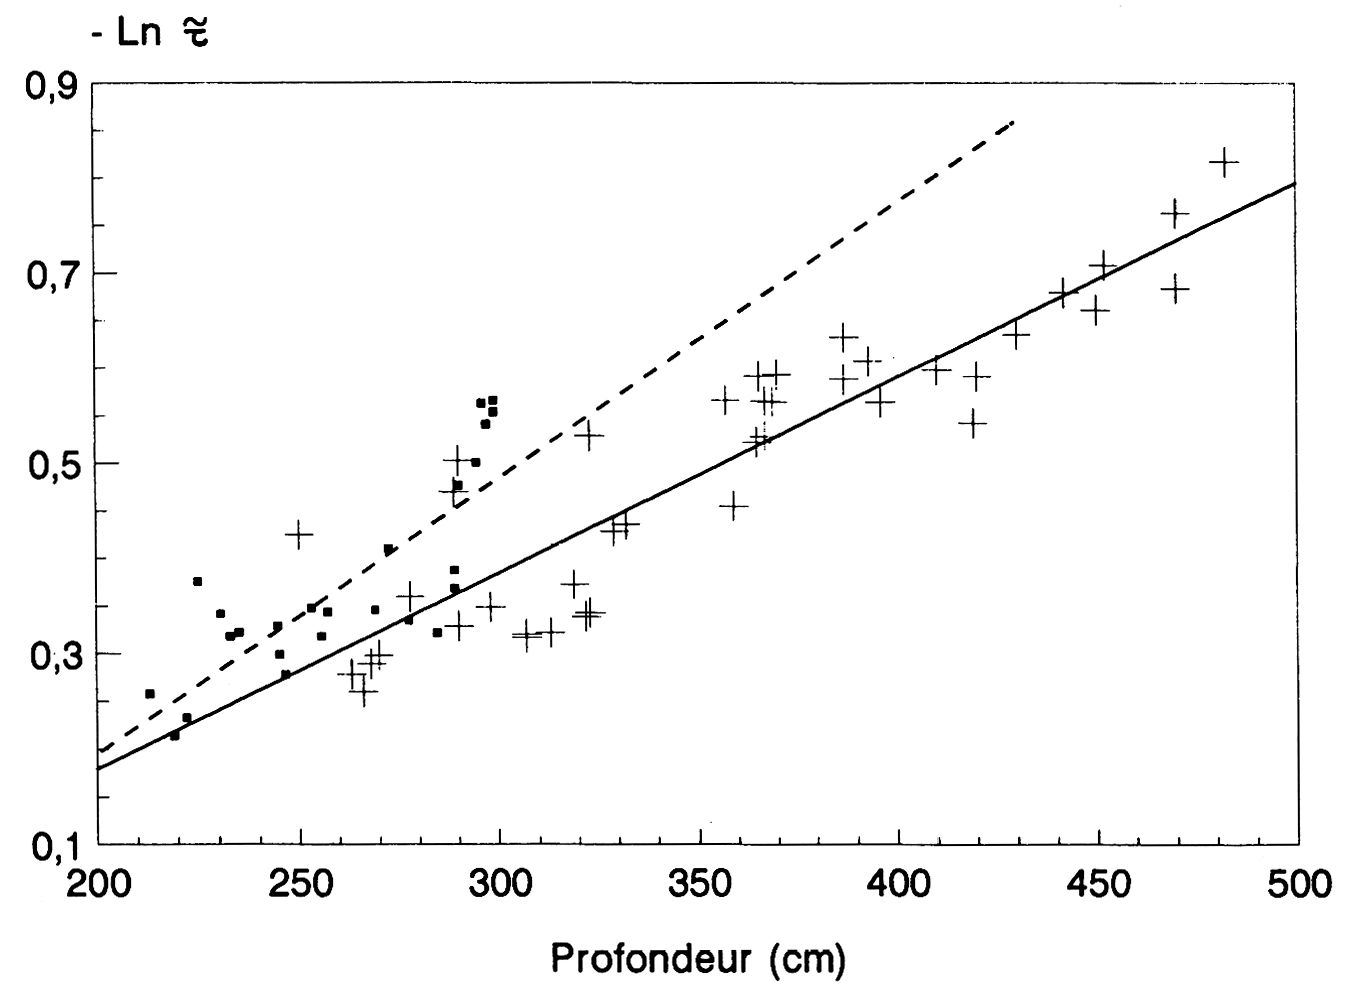 amino acid racemization dating of fossil bones Racemization is the process in which one enantiomer of a compound, such as an l-amino acid, converts to the other enantiomer the compound then alternates between each form while the ratio between the (+) and (–) groups approaches 1:1, at which point it becomes optically inactive in a laboratory .